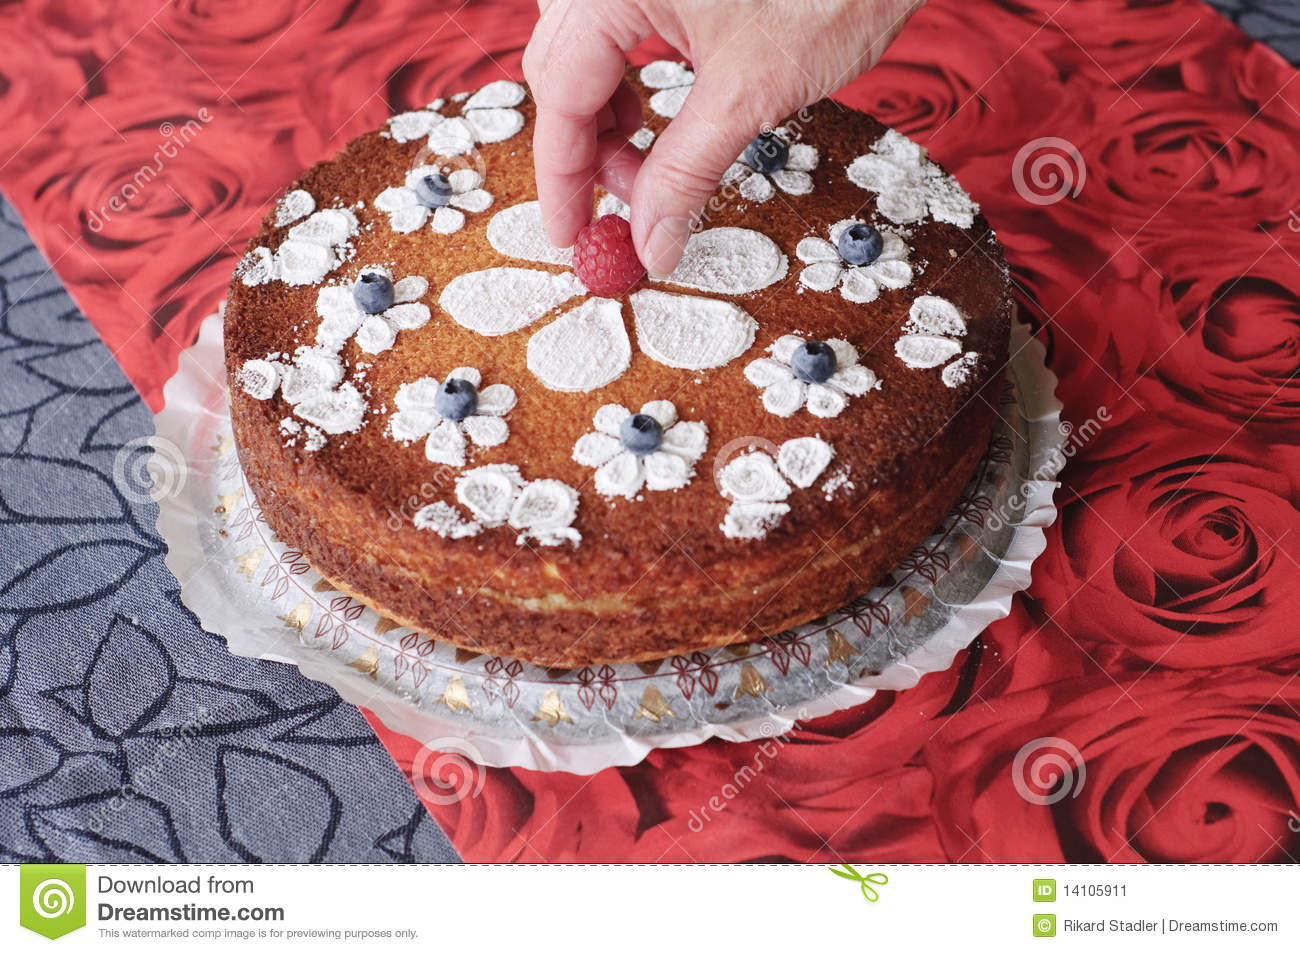 Cake Decorating Stock Images : Decorating The Cake Stock Image - Image: 14105911